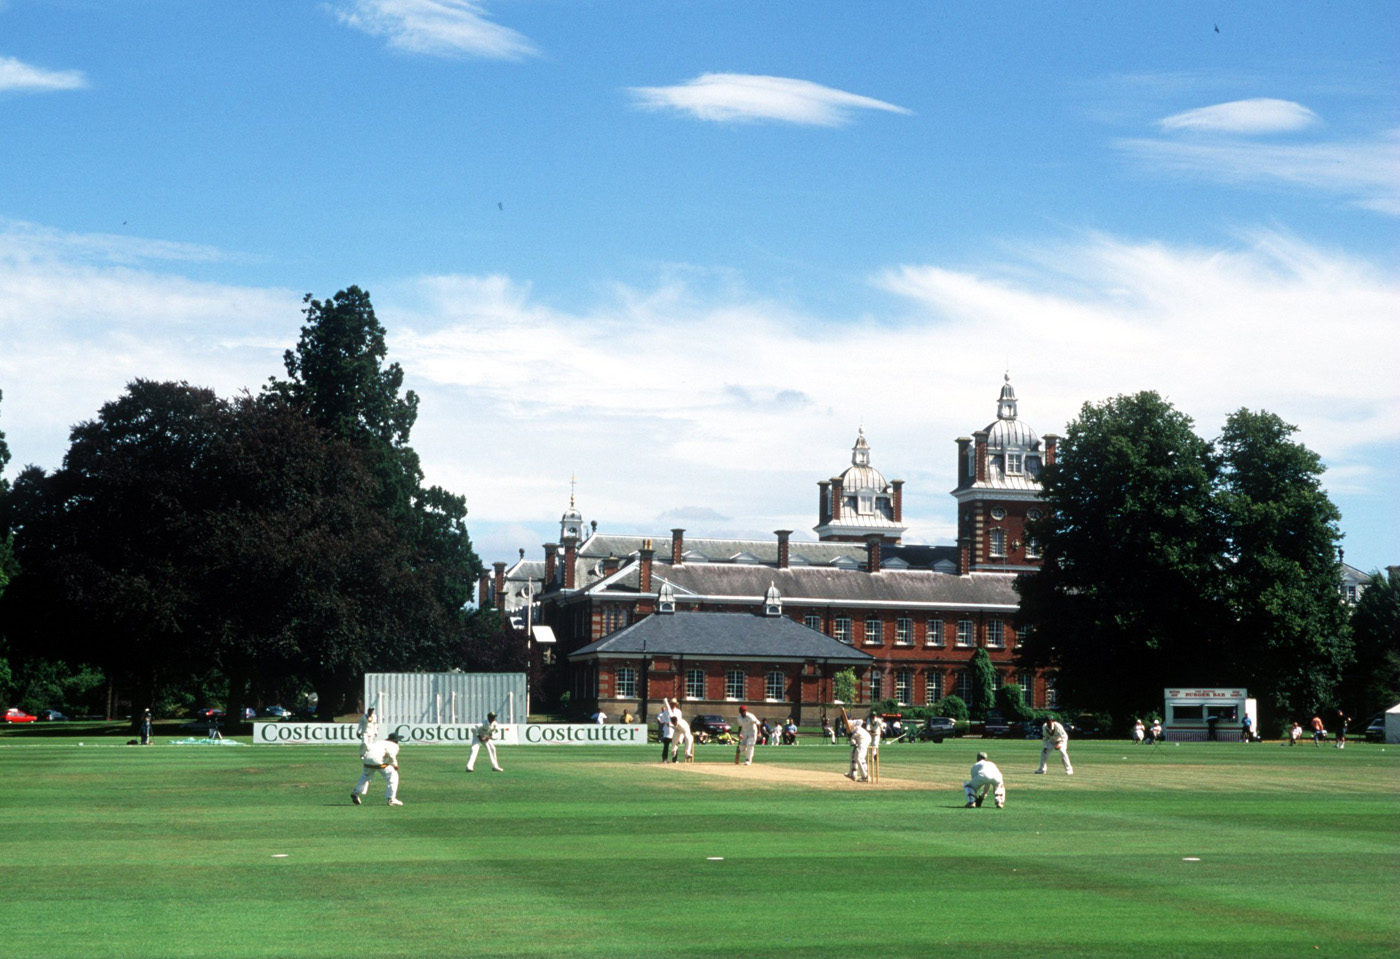 Given the tournament's tight finances, players stayed in dorm-style accommodation at Wellington College in Berkshire (pictured) and Surrey University